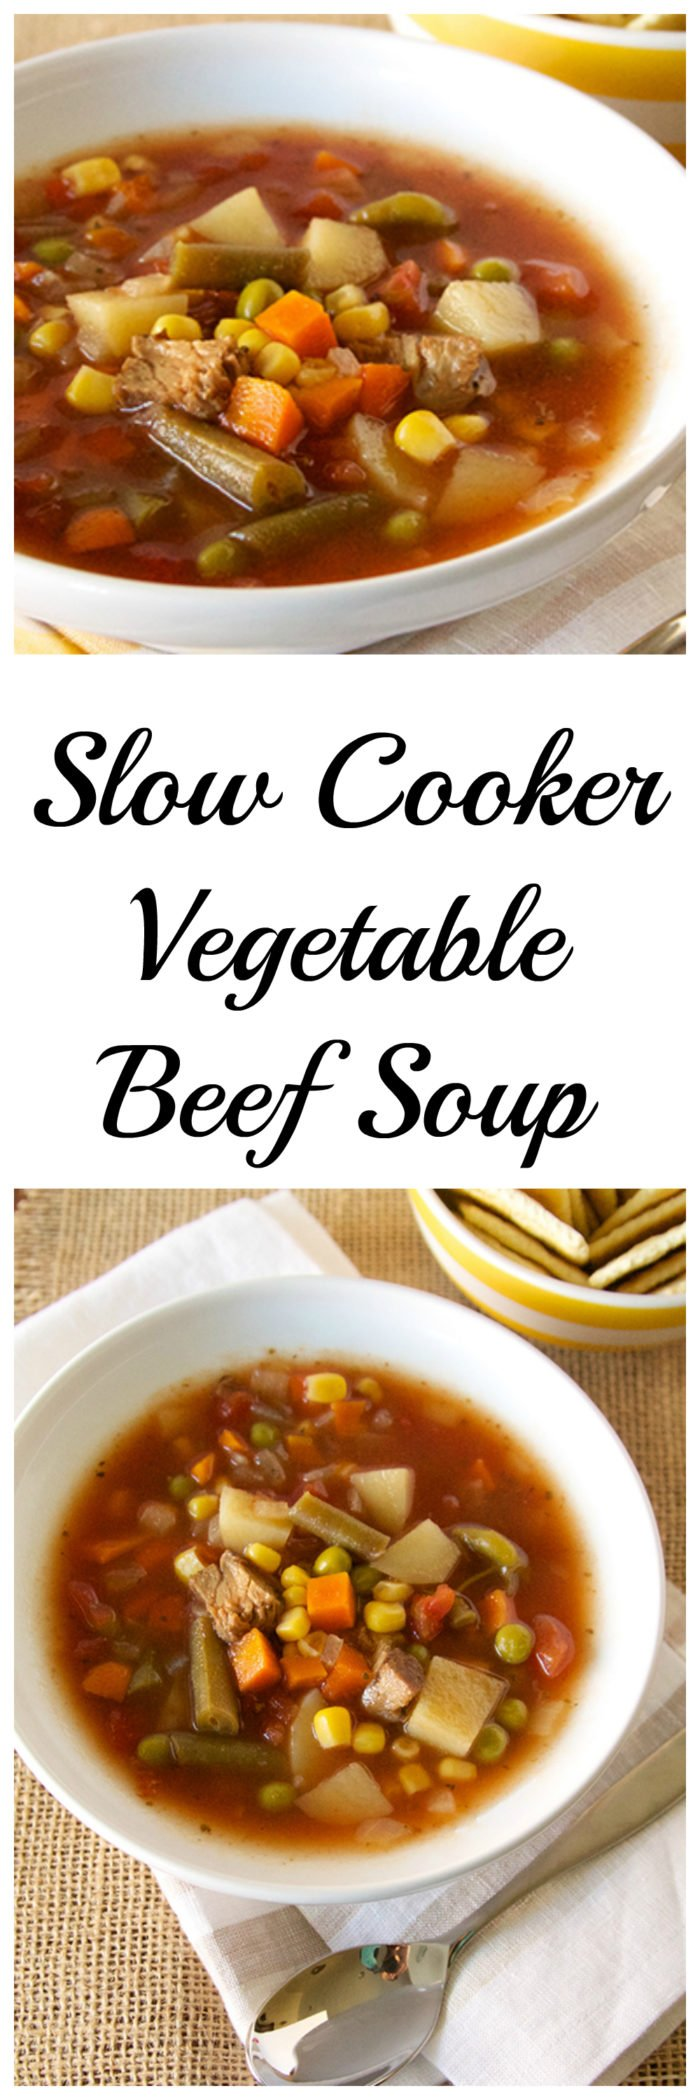 Slow Cooker Vegetable Beef Soup on www.cookingwithruthie.com take a look at all those yummy veggies with beef chunks and tomato broth… you know you want it!